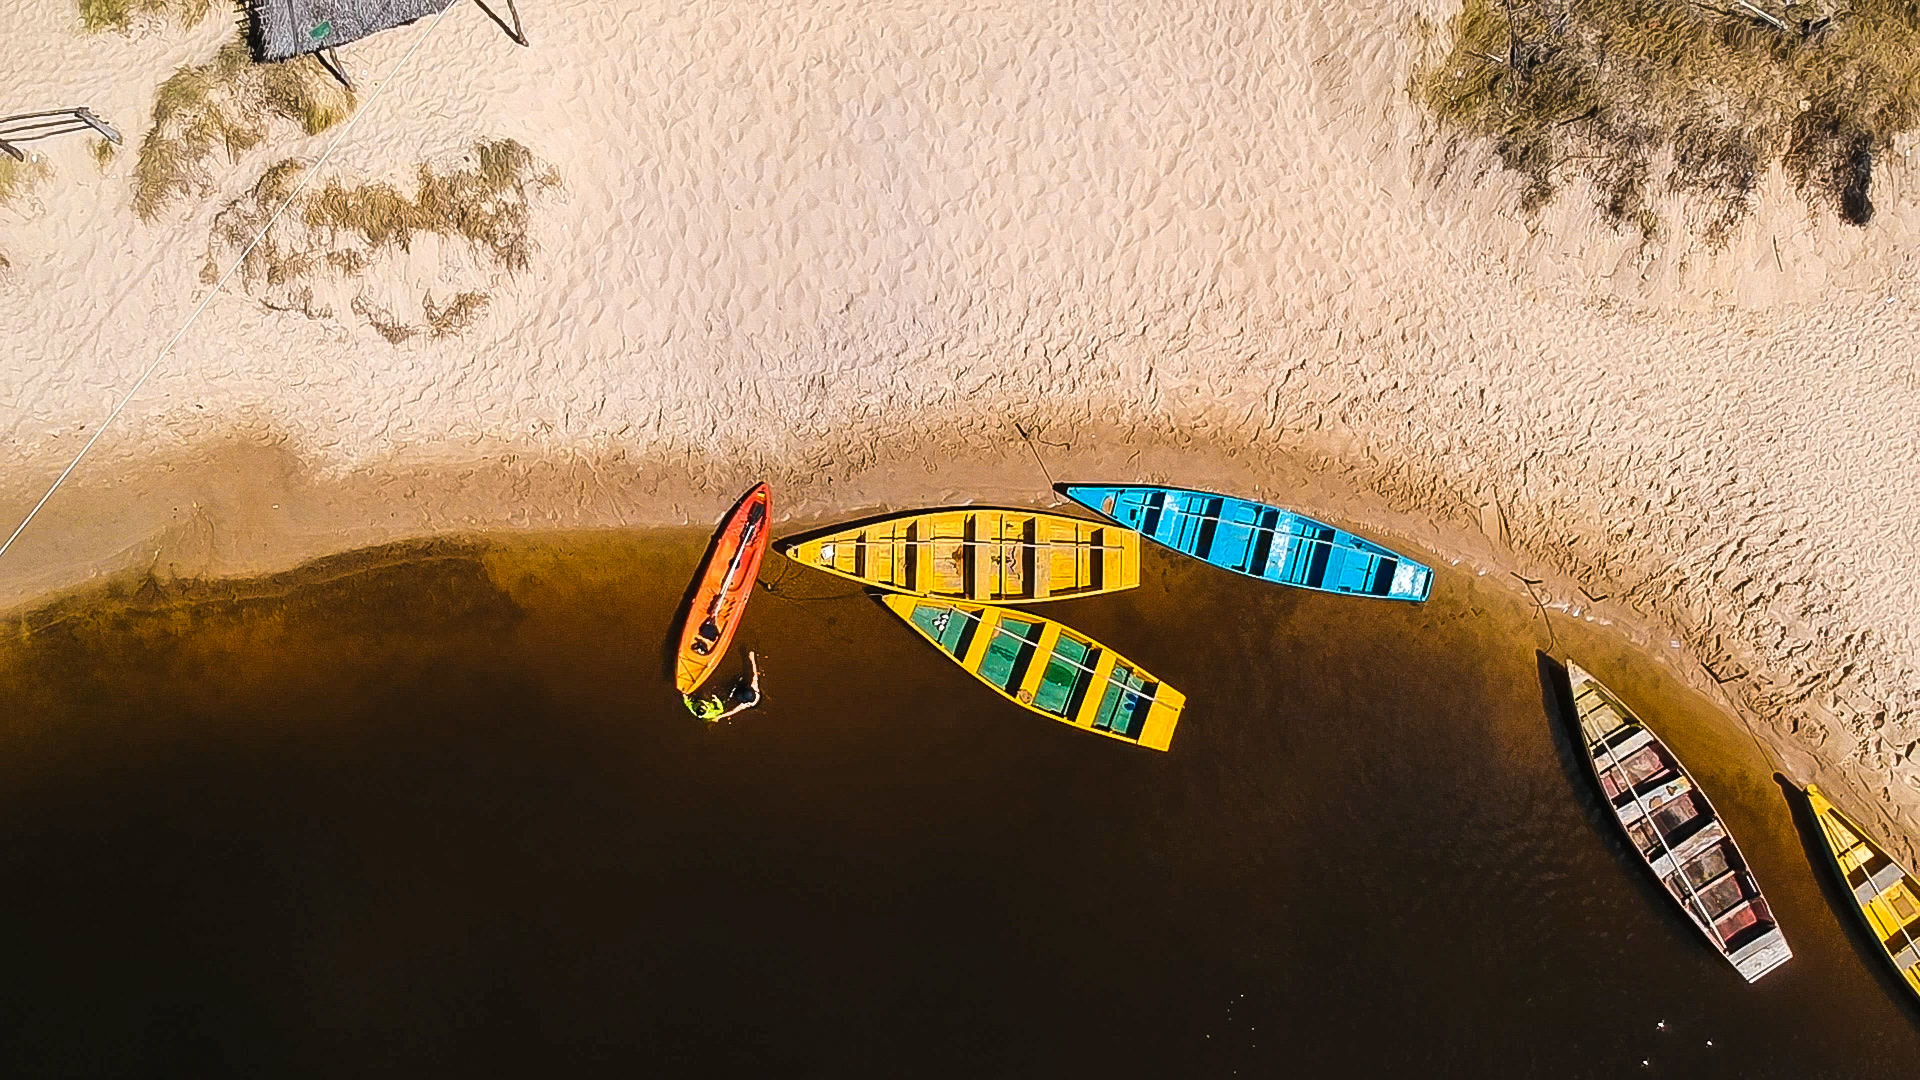 Black Abstract Wallpaper Top View Of Assorted Colored Row Boats 183 Free Stock Photo